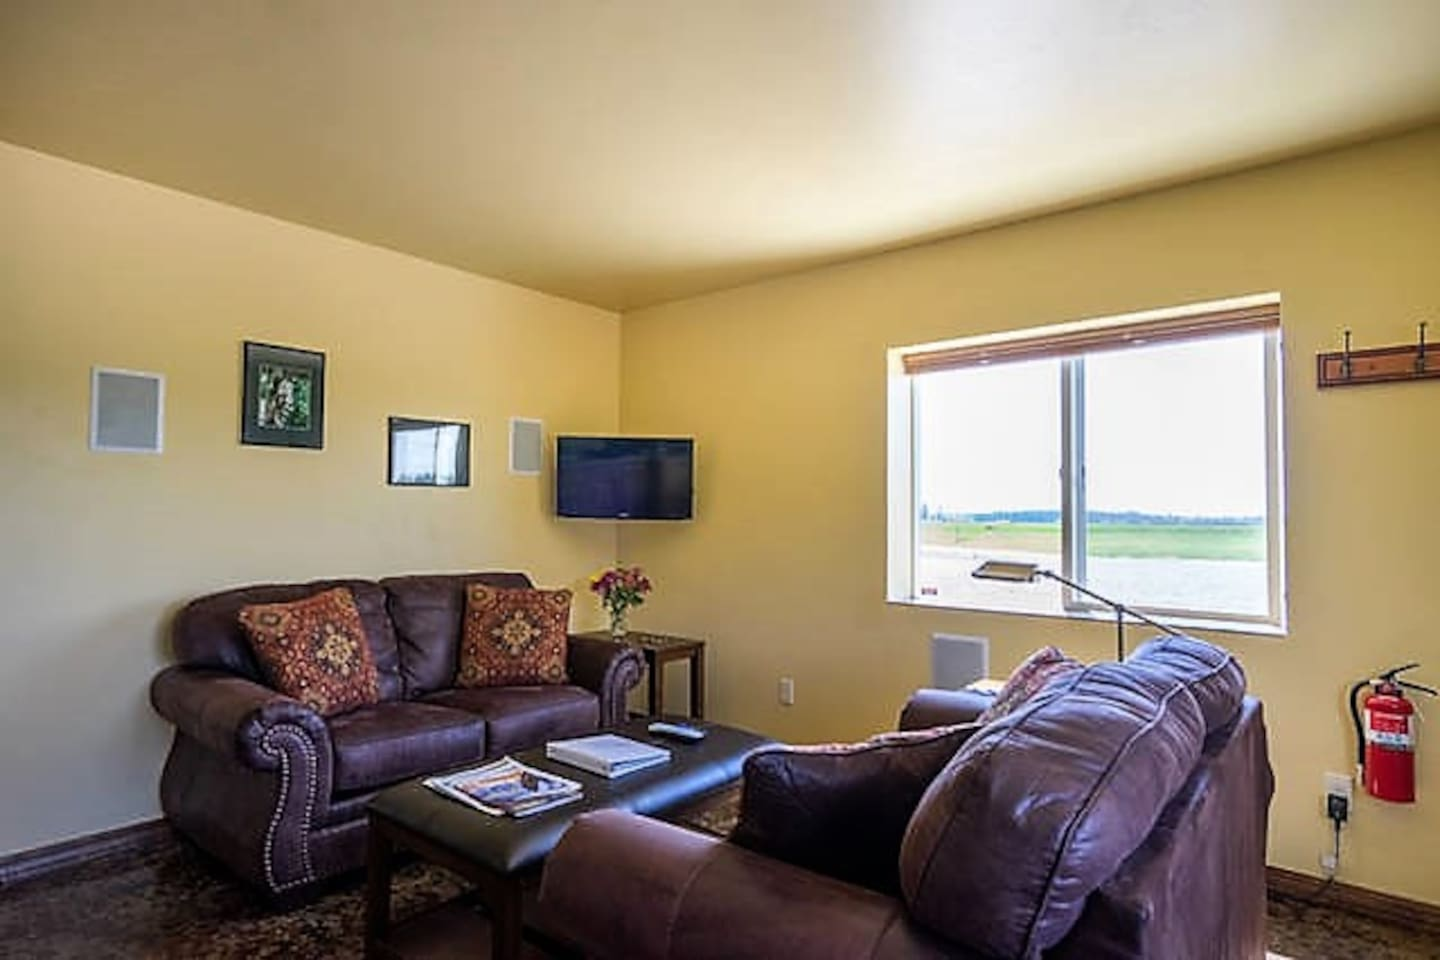 Comfortable living room with two love seats, a coffee table, two end tables, and a flat screen TV.